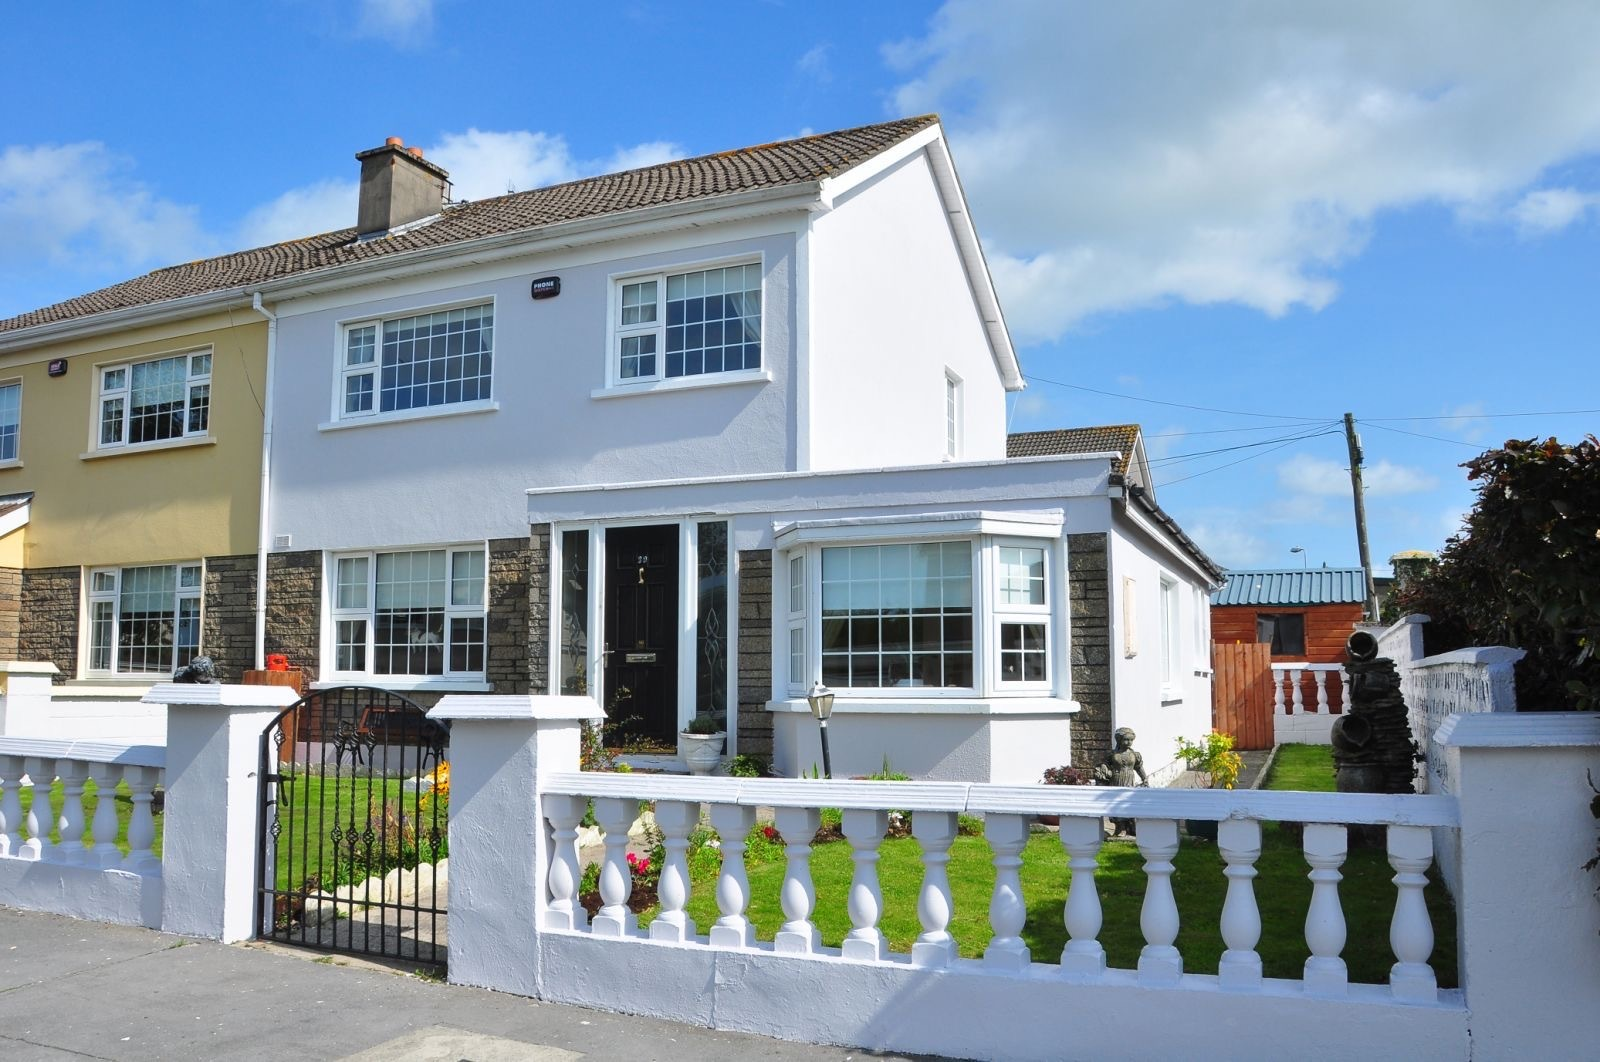 29 Moyne Road, Thurles, Co. Tipperary